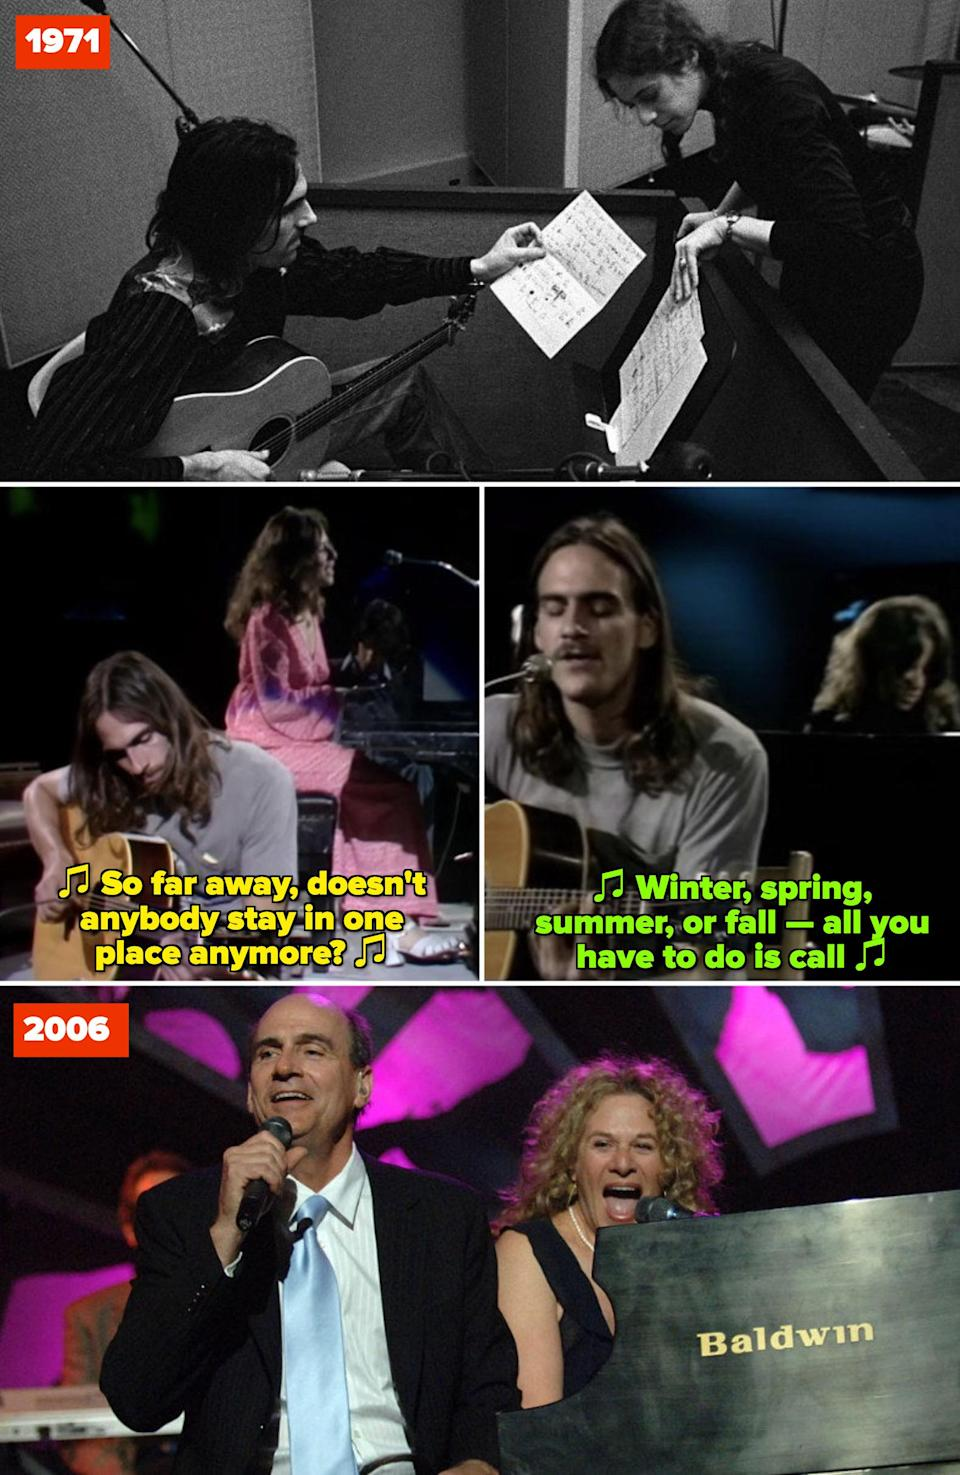 """King and Taylor in a recording studio in 1971; King and Taylor performing """"So Far Away"""" and """"You've Got a Friend"""" on BBC in Concert in 1971; King and Taylor performing at Taylor's MusiCares Person of the Year ceremony in 2006"""